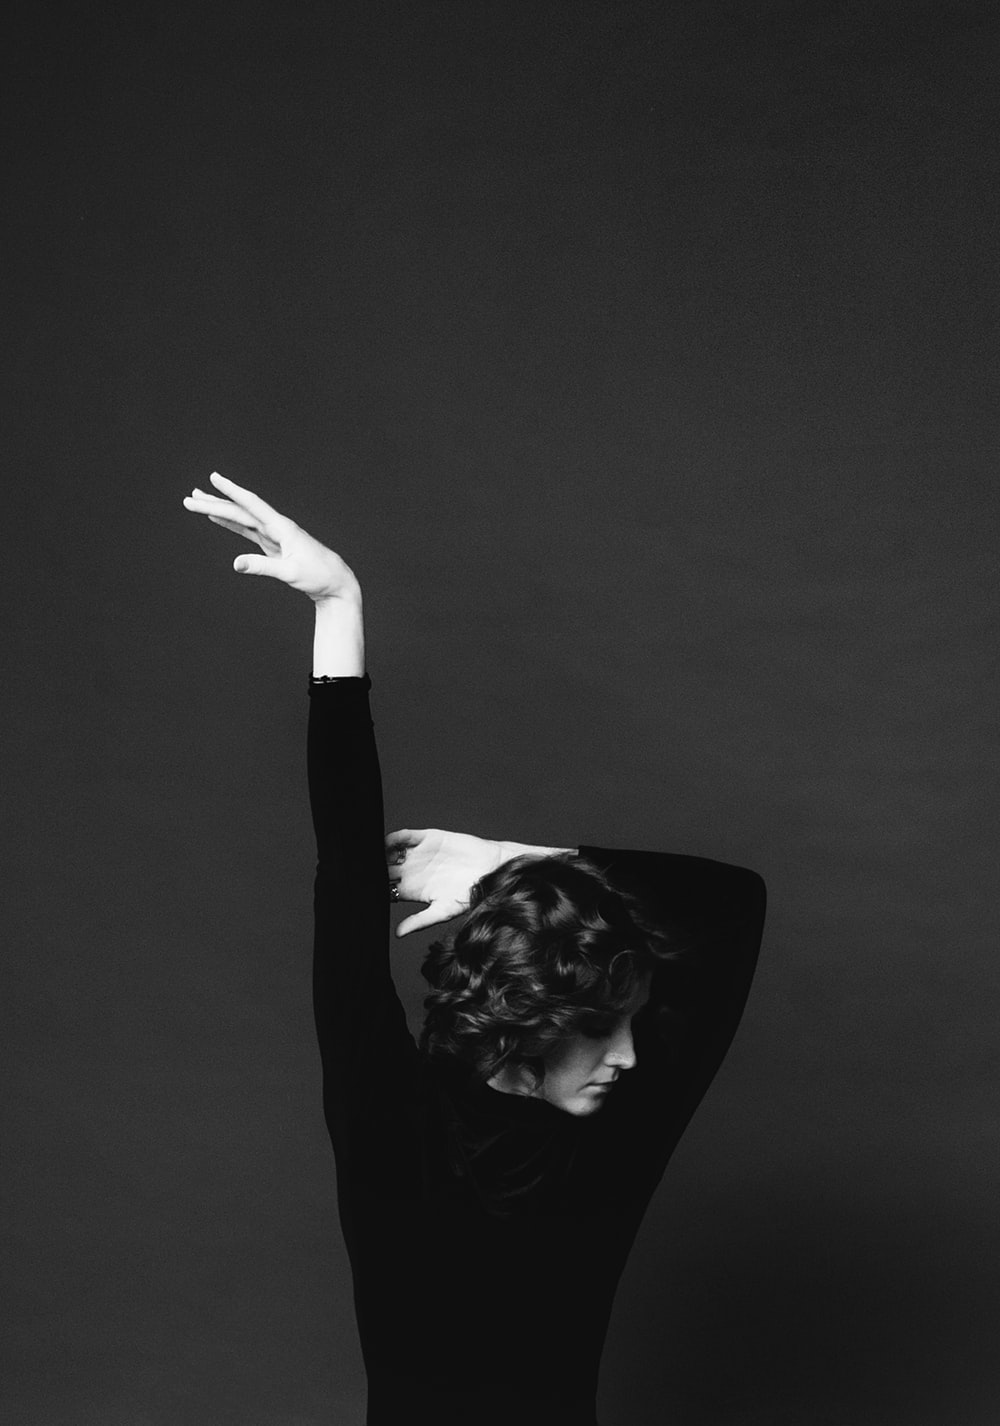 grayscale photo of woman in long-sleeved shirt posing